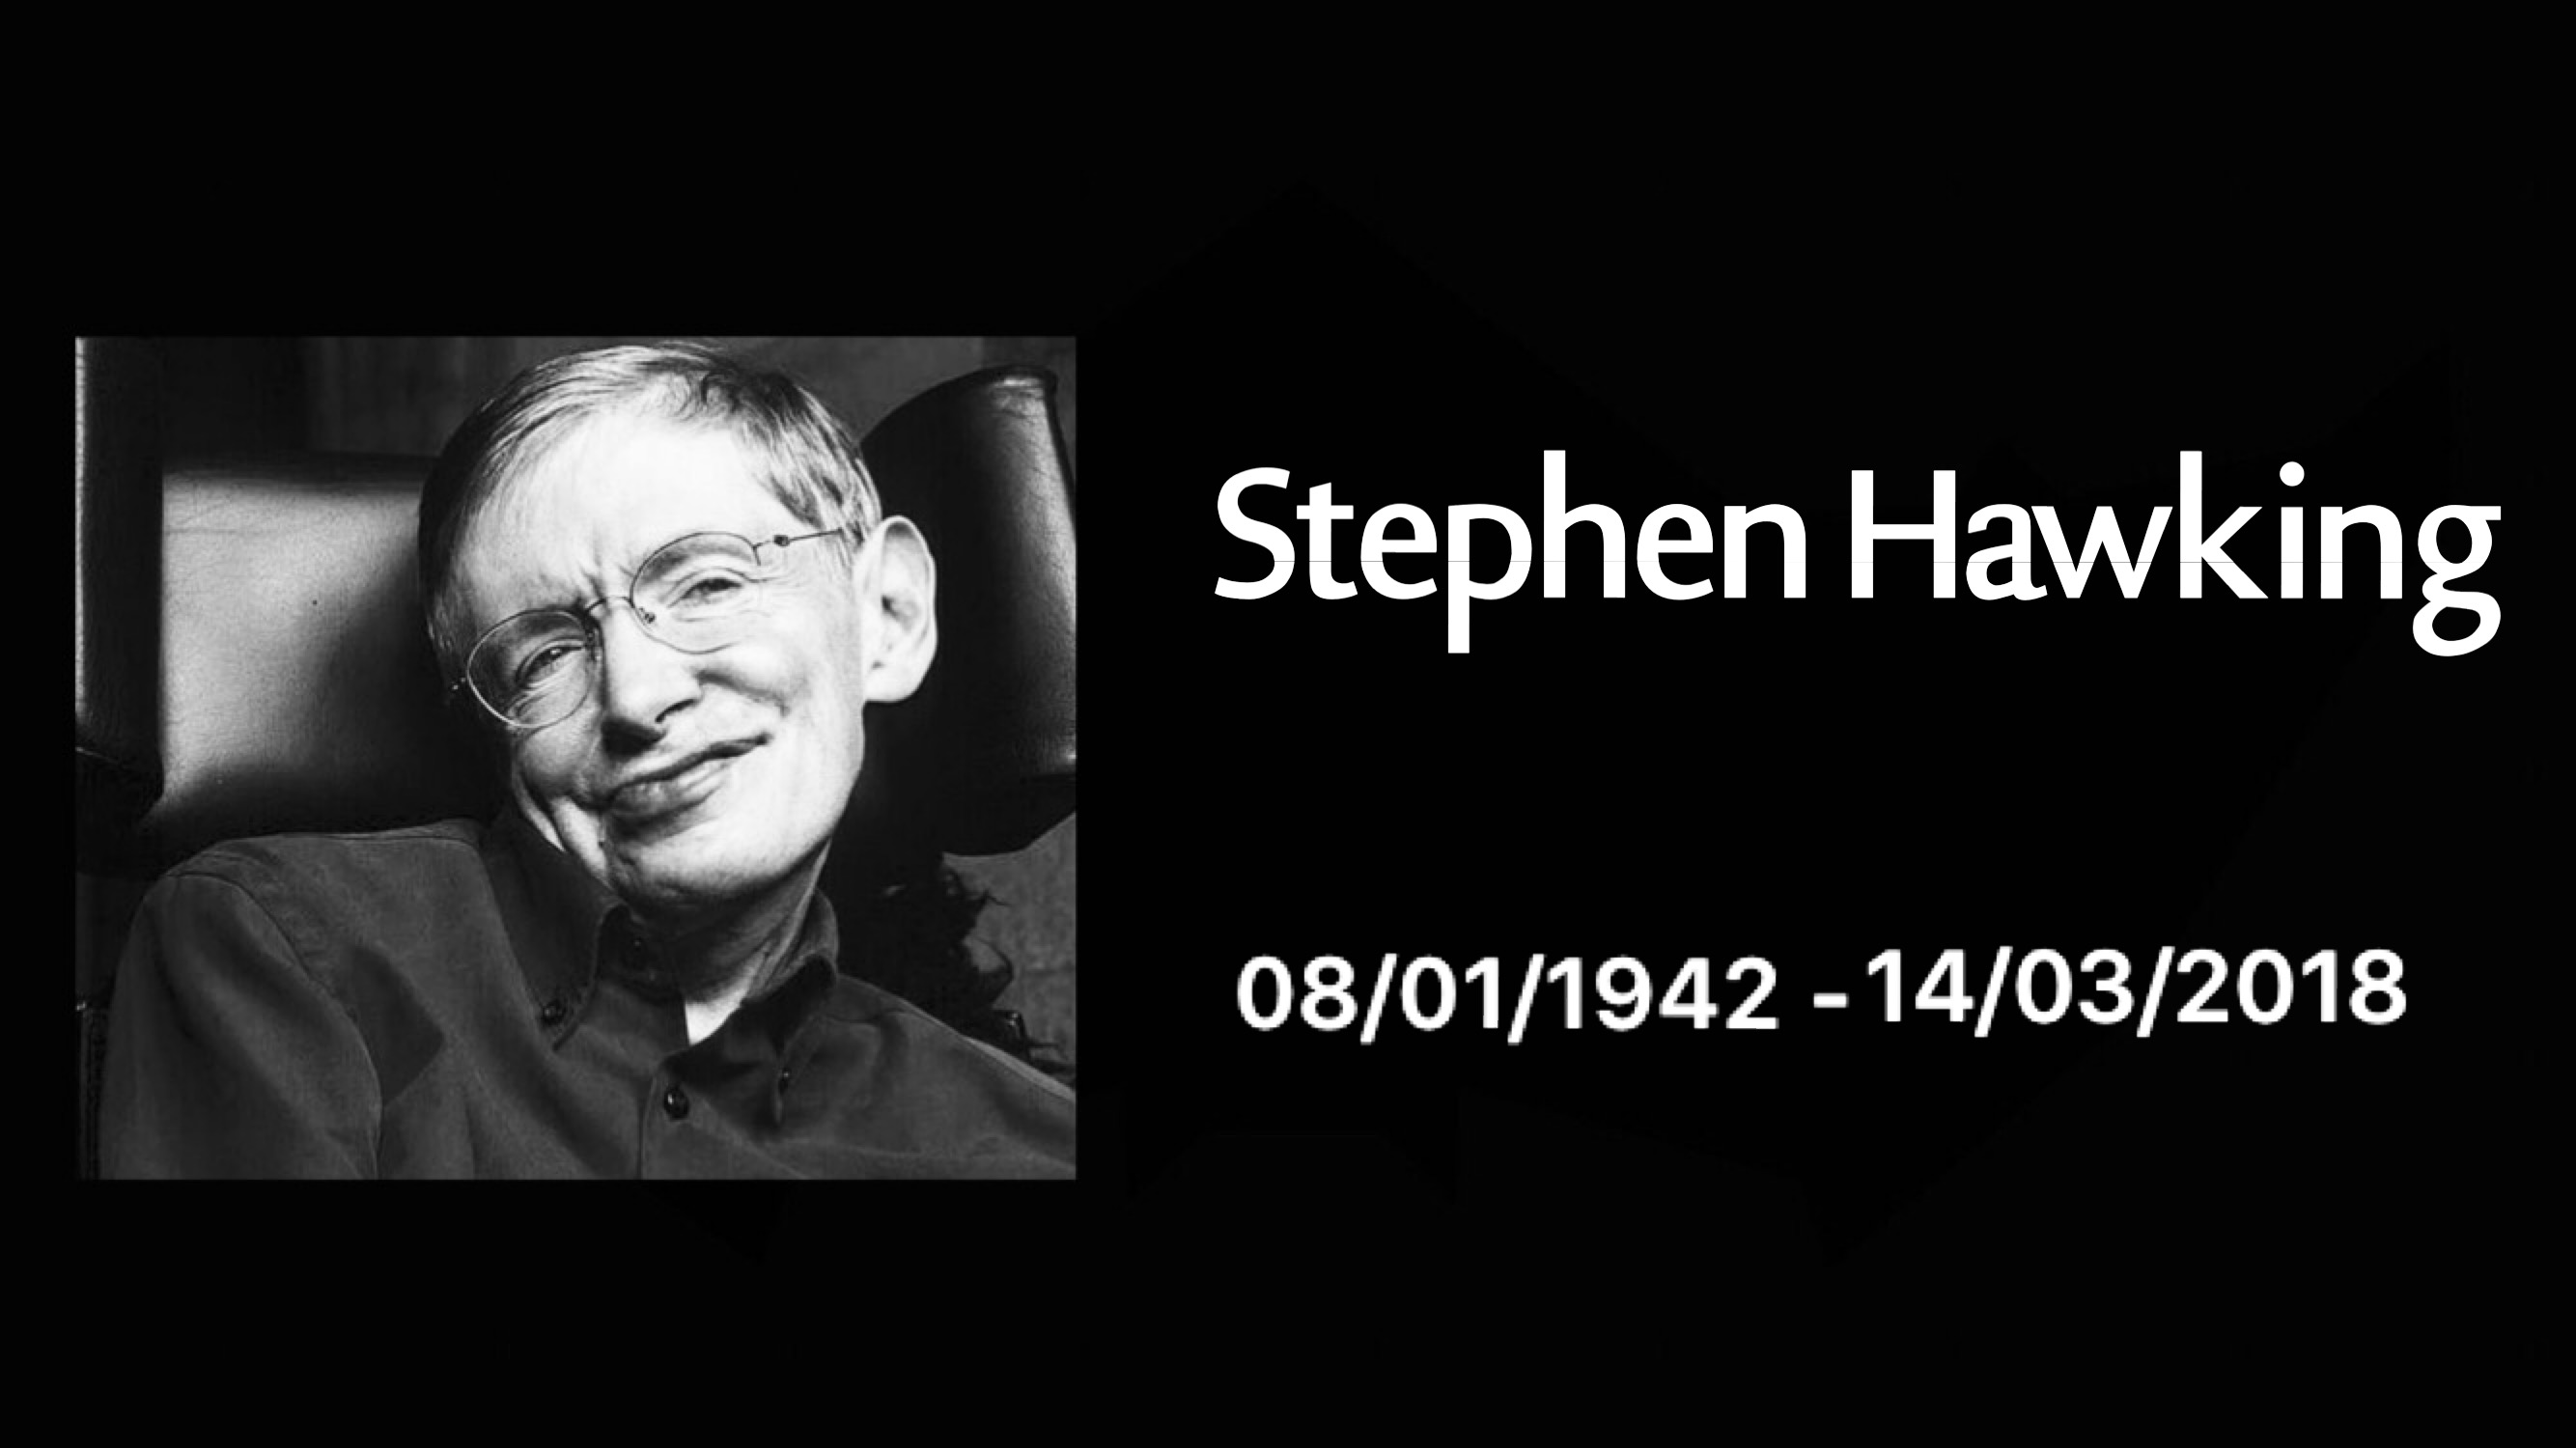 Stephen Hawking morre aos 76 anos 3